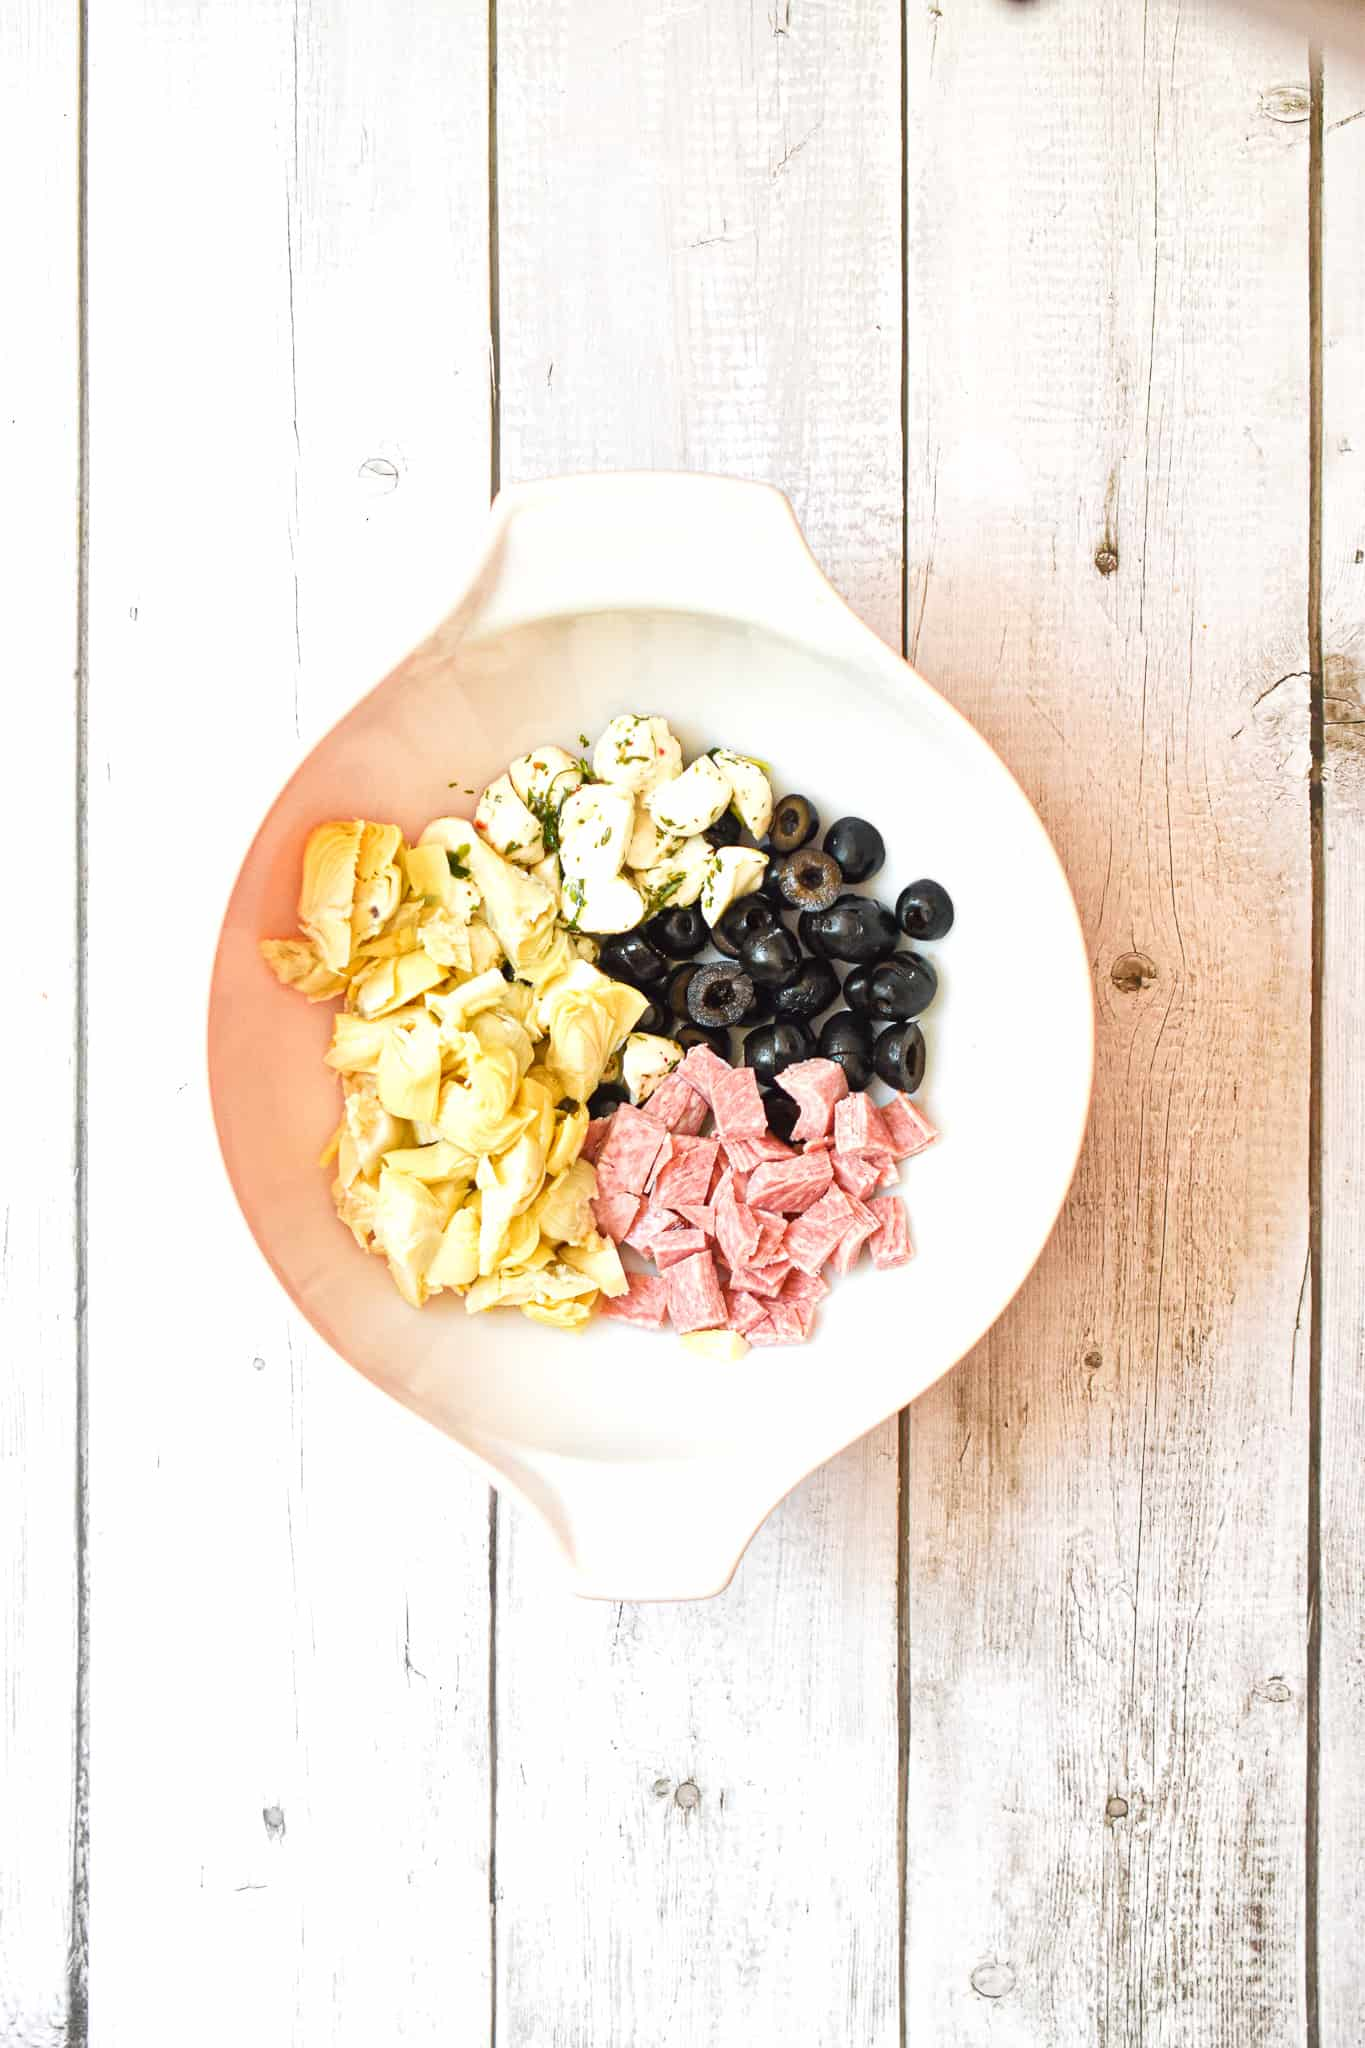 The black olives, marinated mozzarella, salami, and chopped artichokes are in a bowl